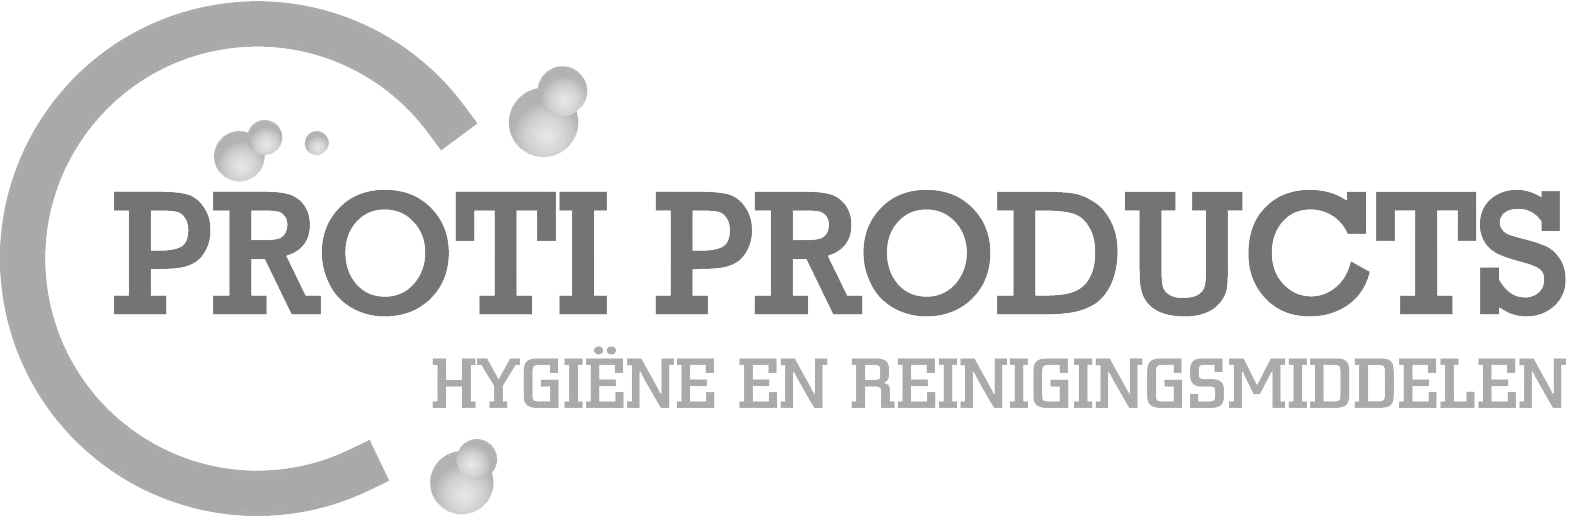 Proti-Products